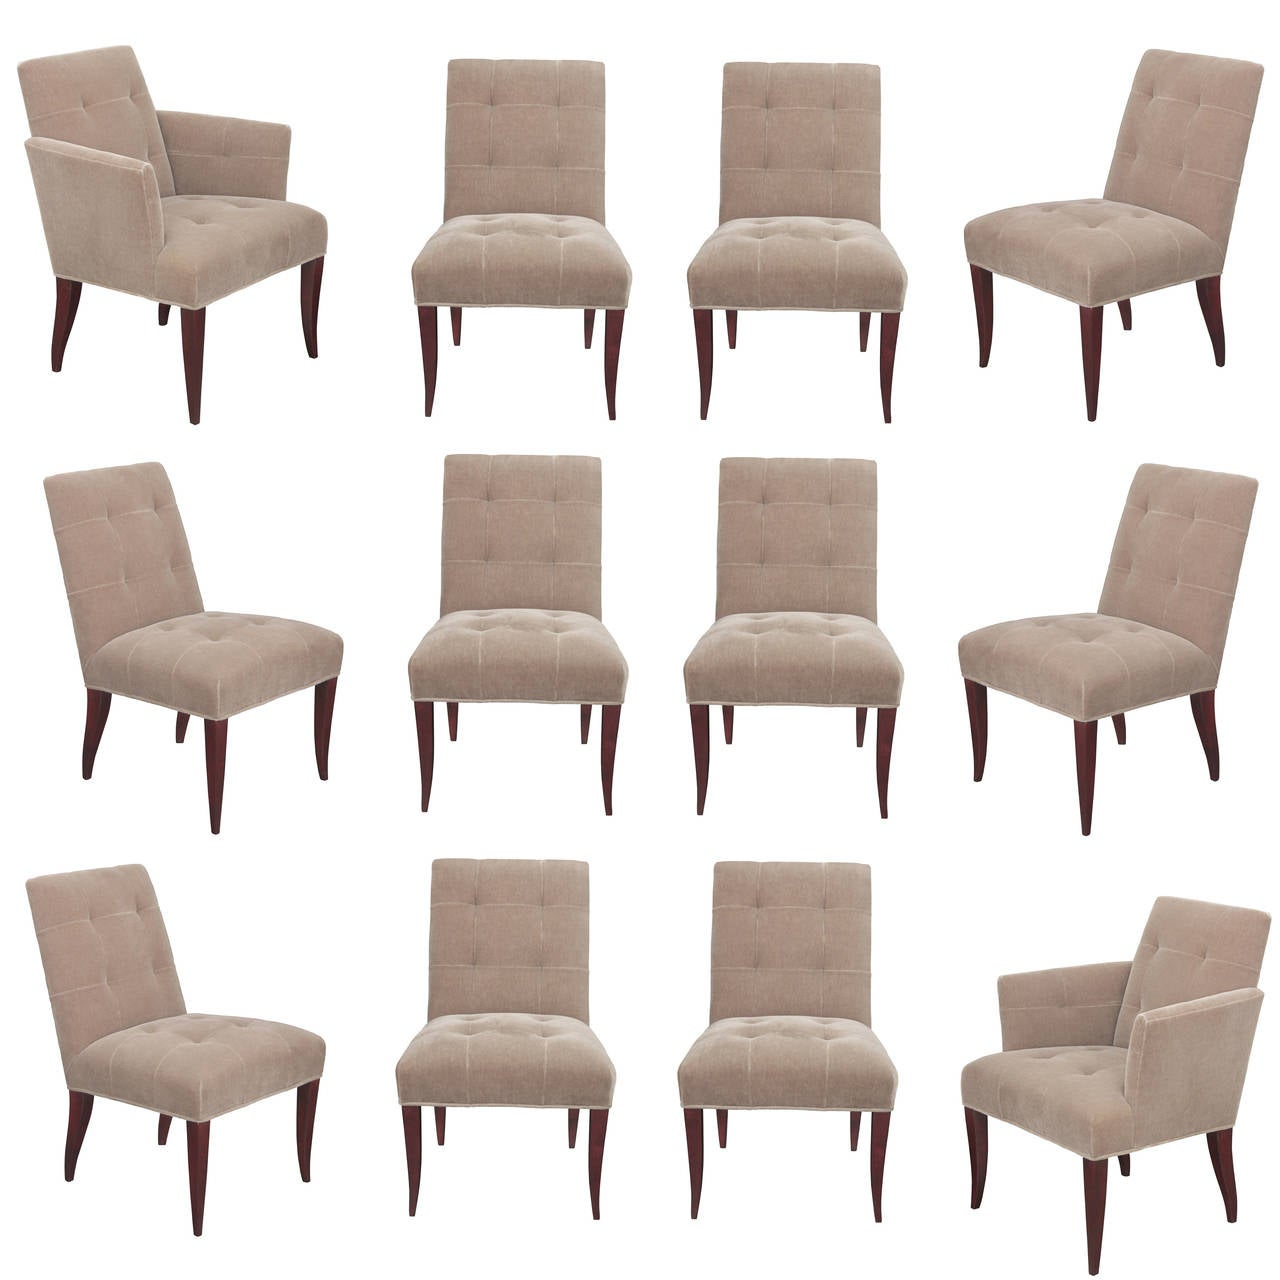 Set Of 12 Eaton Dining Chairs By John Hutton For Donghia 1